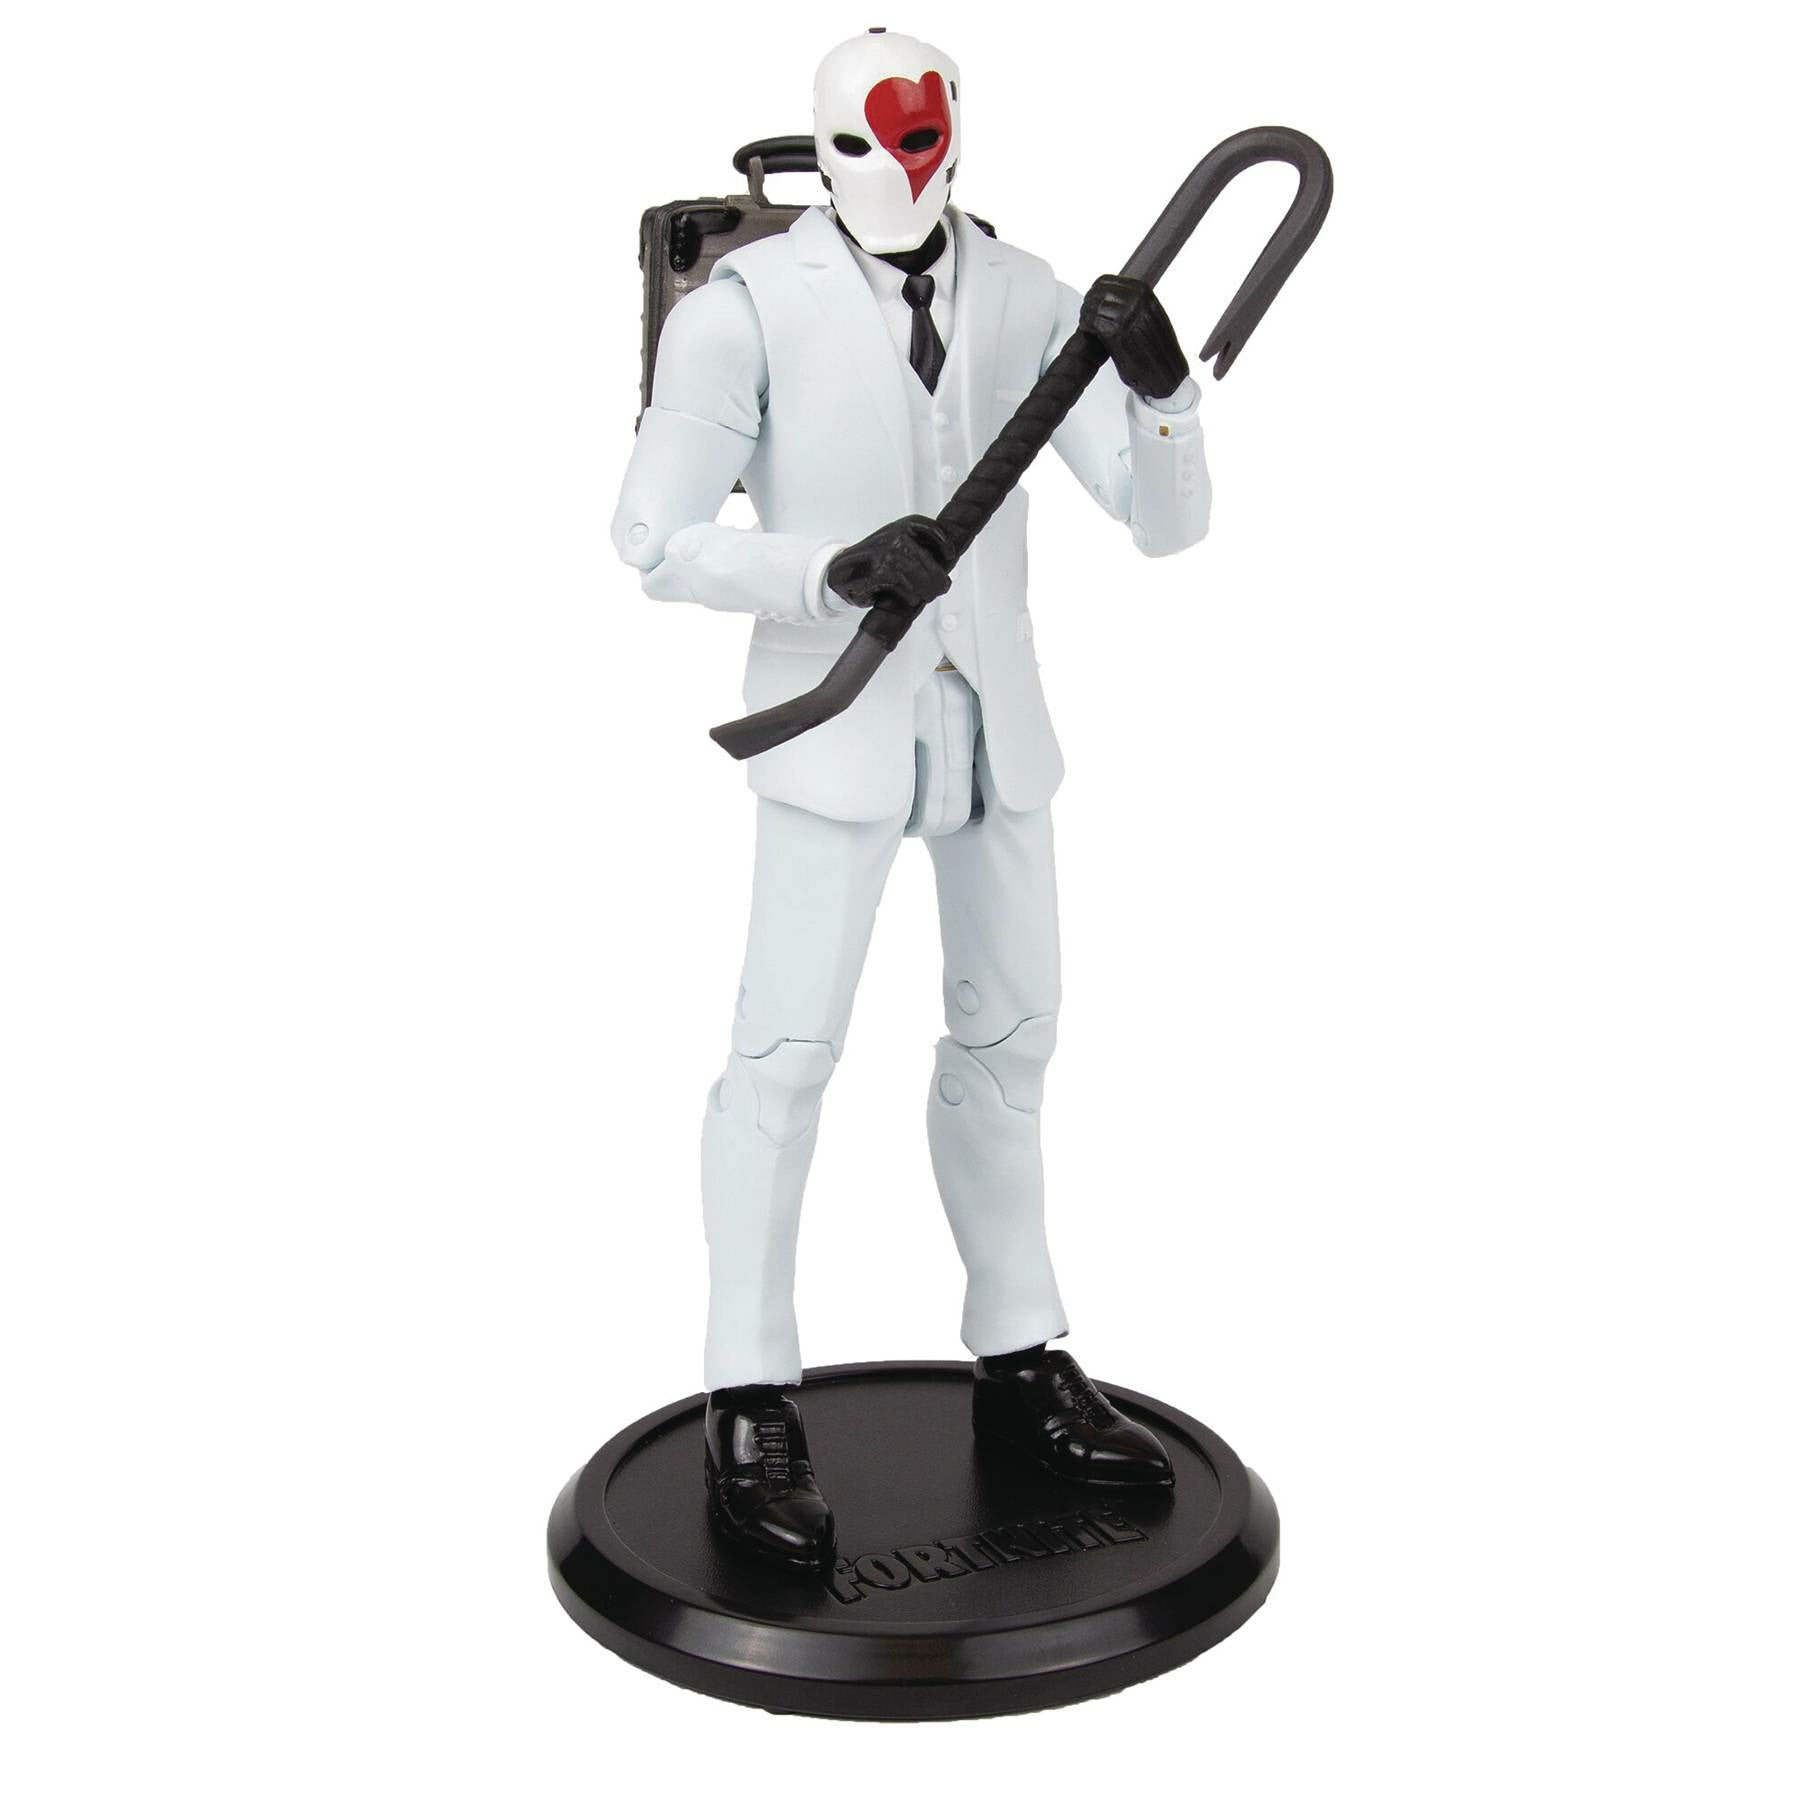 Fortnite Wild Card in Red 7 inch Premium Action Figure